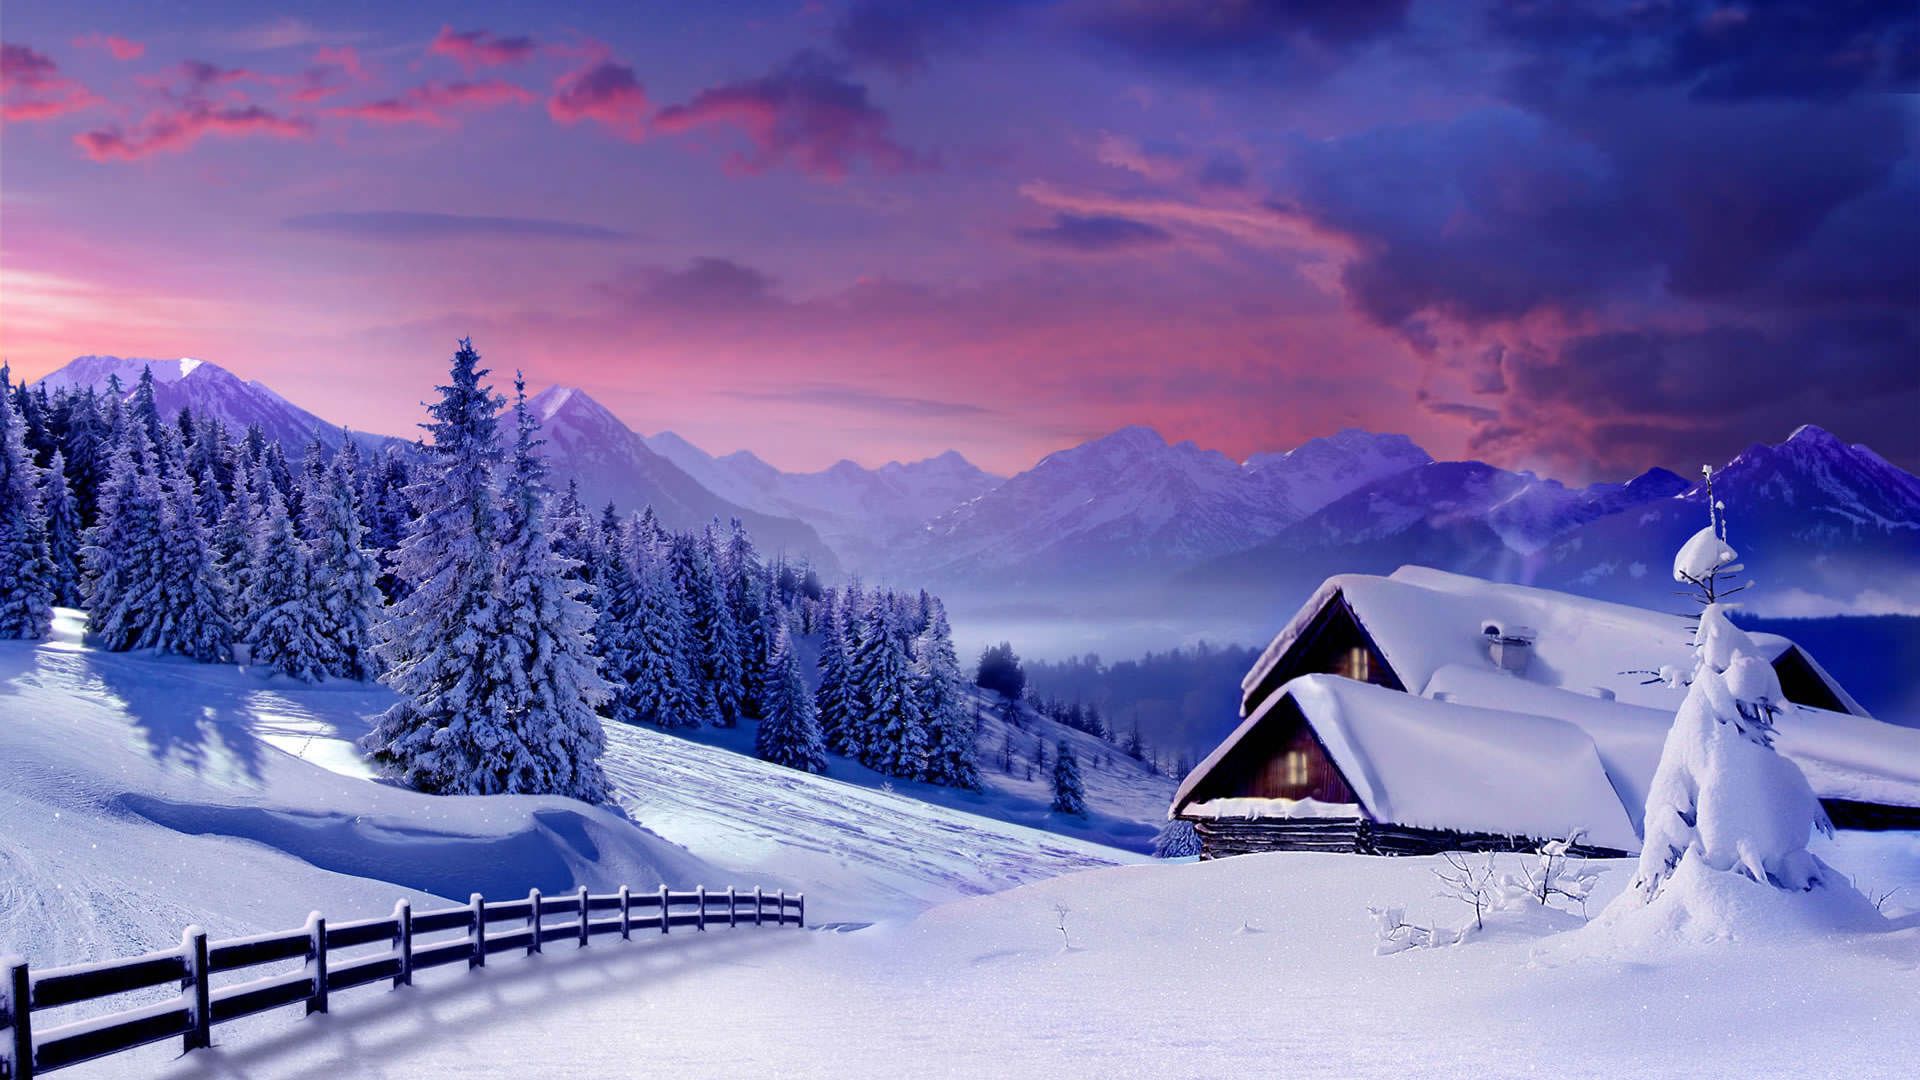 Beautiful Winter wallpaper 144719 1920x1080